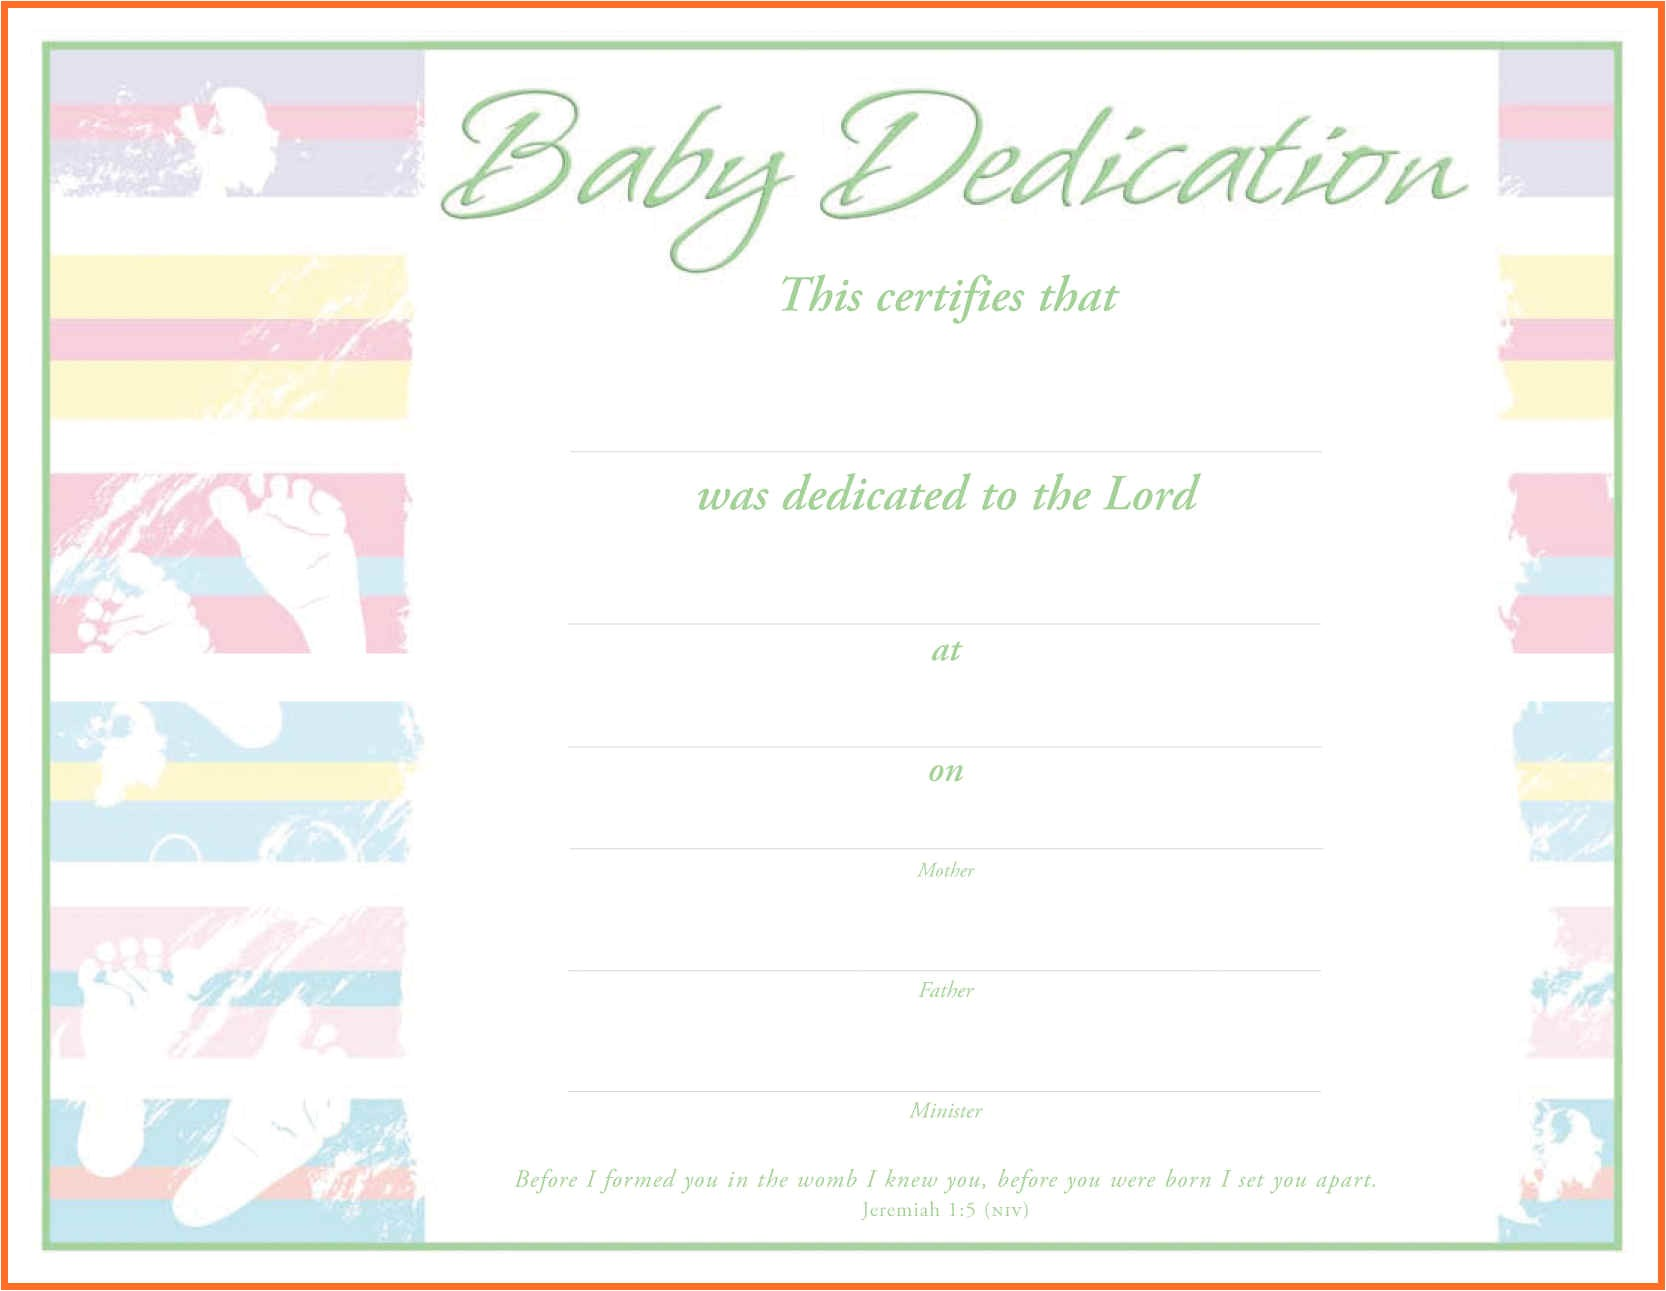 Baby Dedication Certificate Template Baby Dedication Certificate 6126031148 Professional and